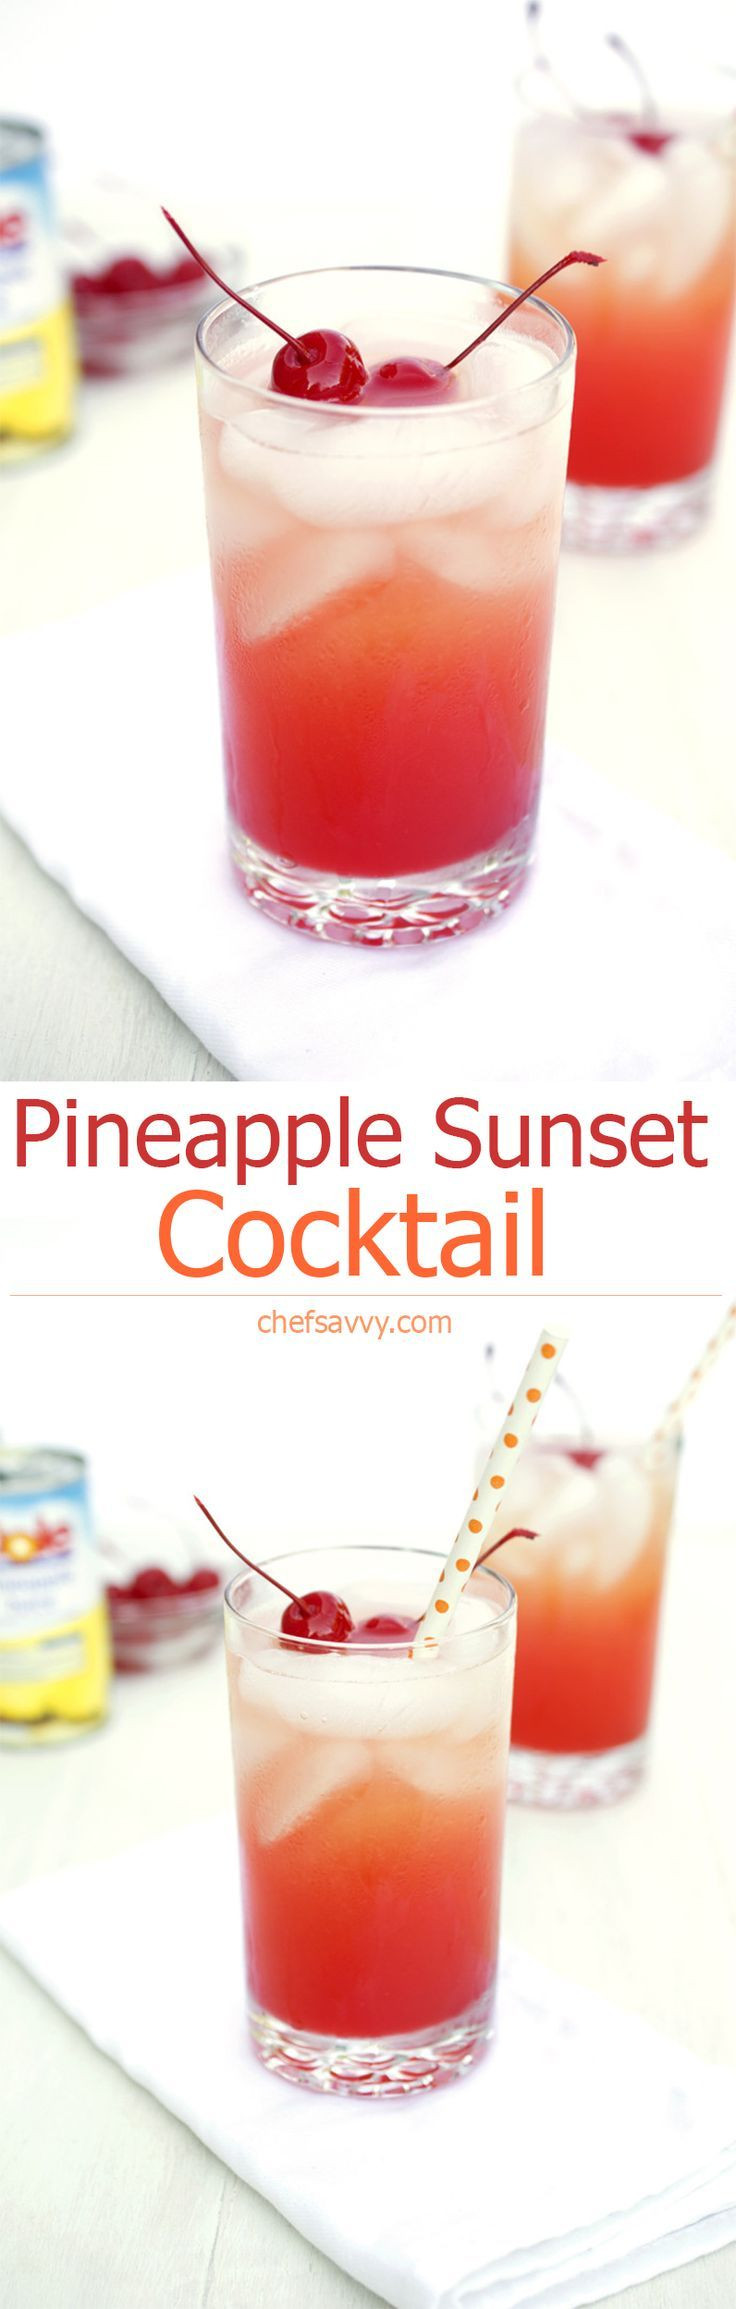 Summer Mixed Drinks With Vodka  25 best ideas about Pineapple Vodka Drinks on Pinterest